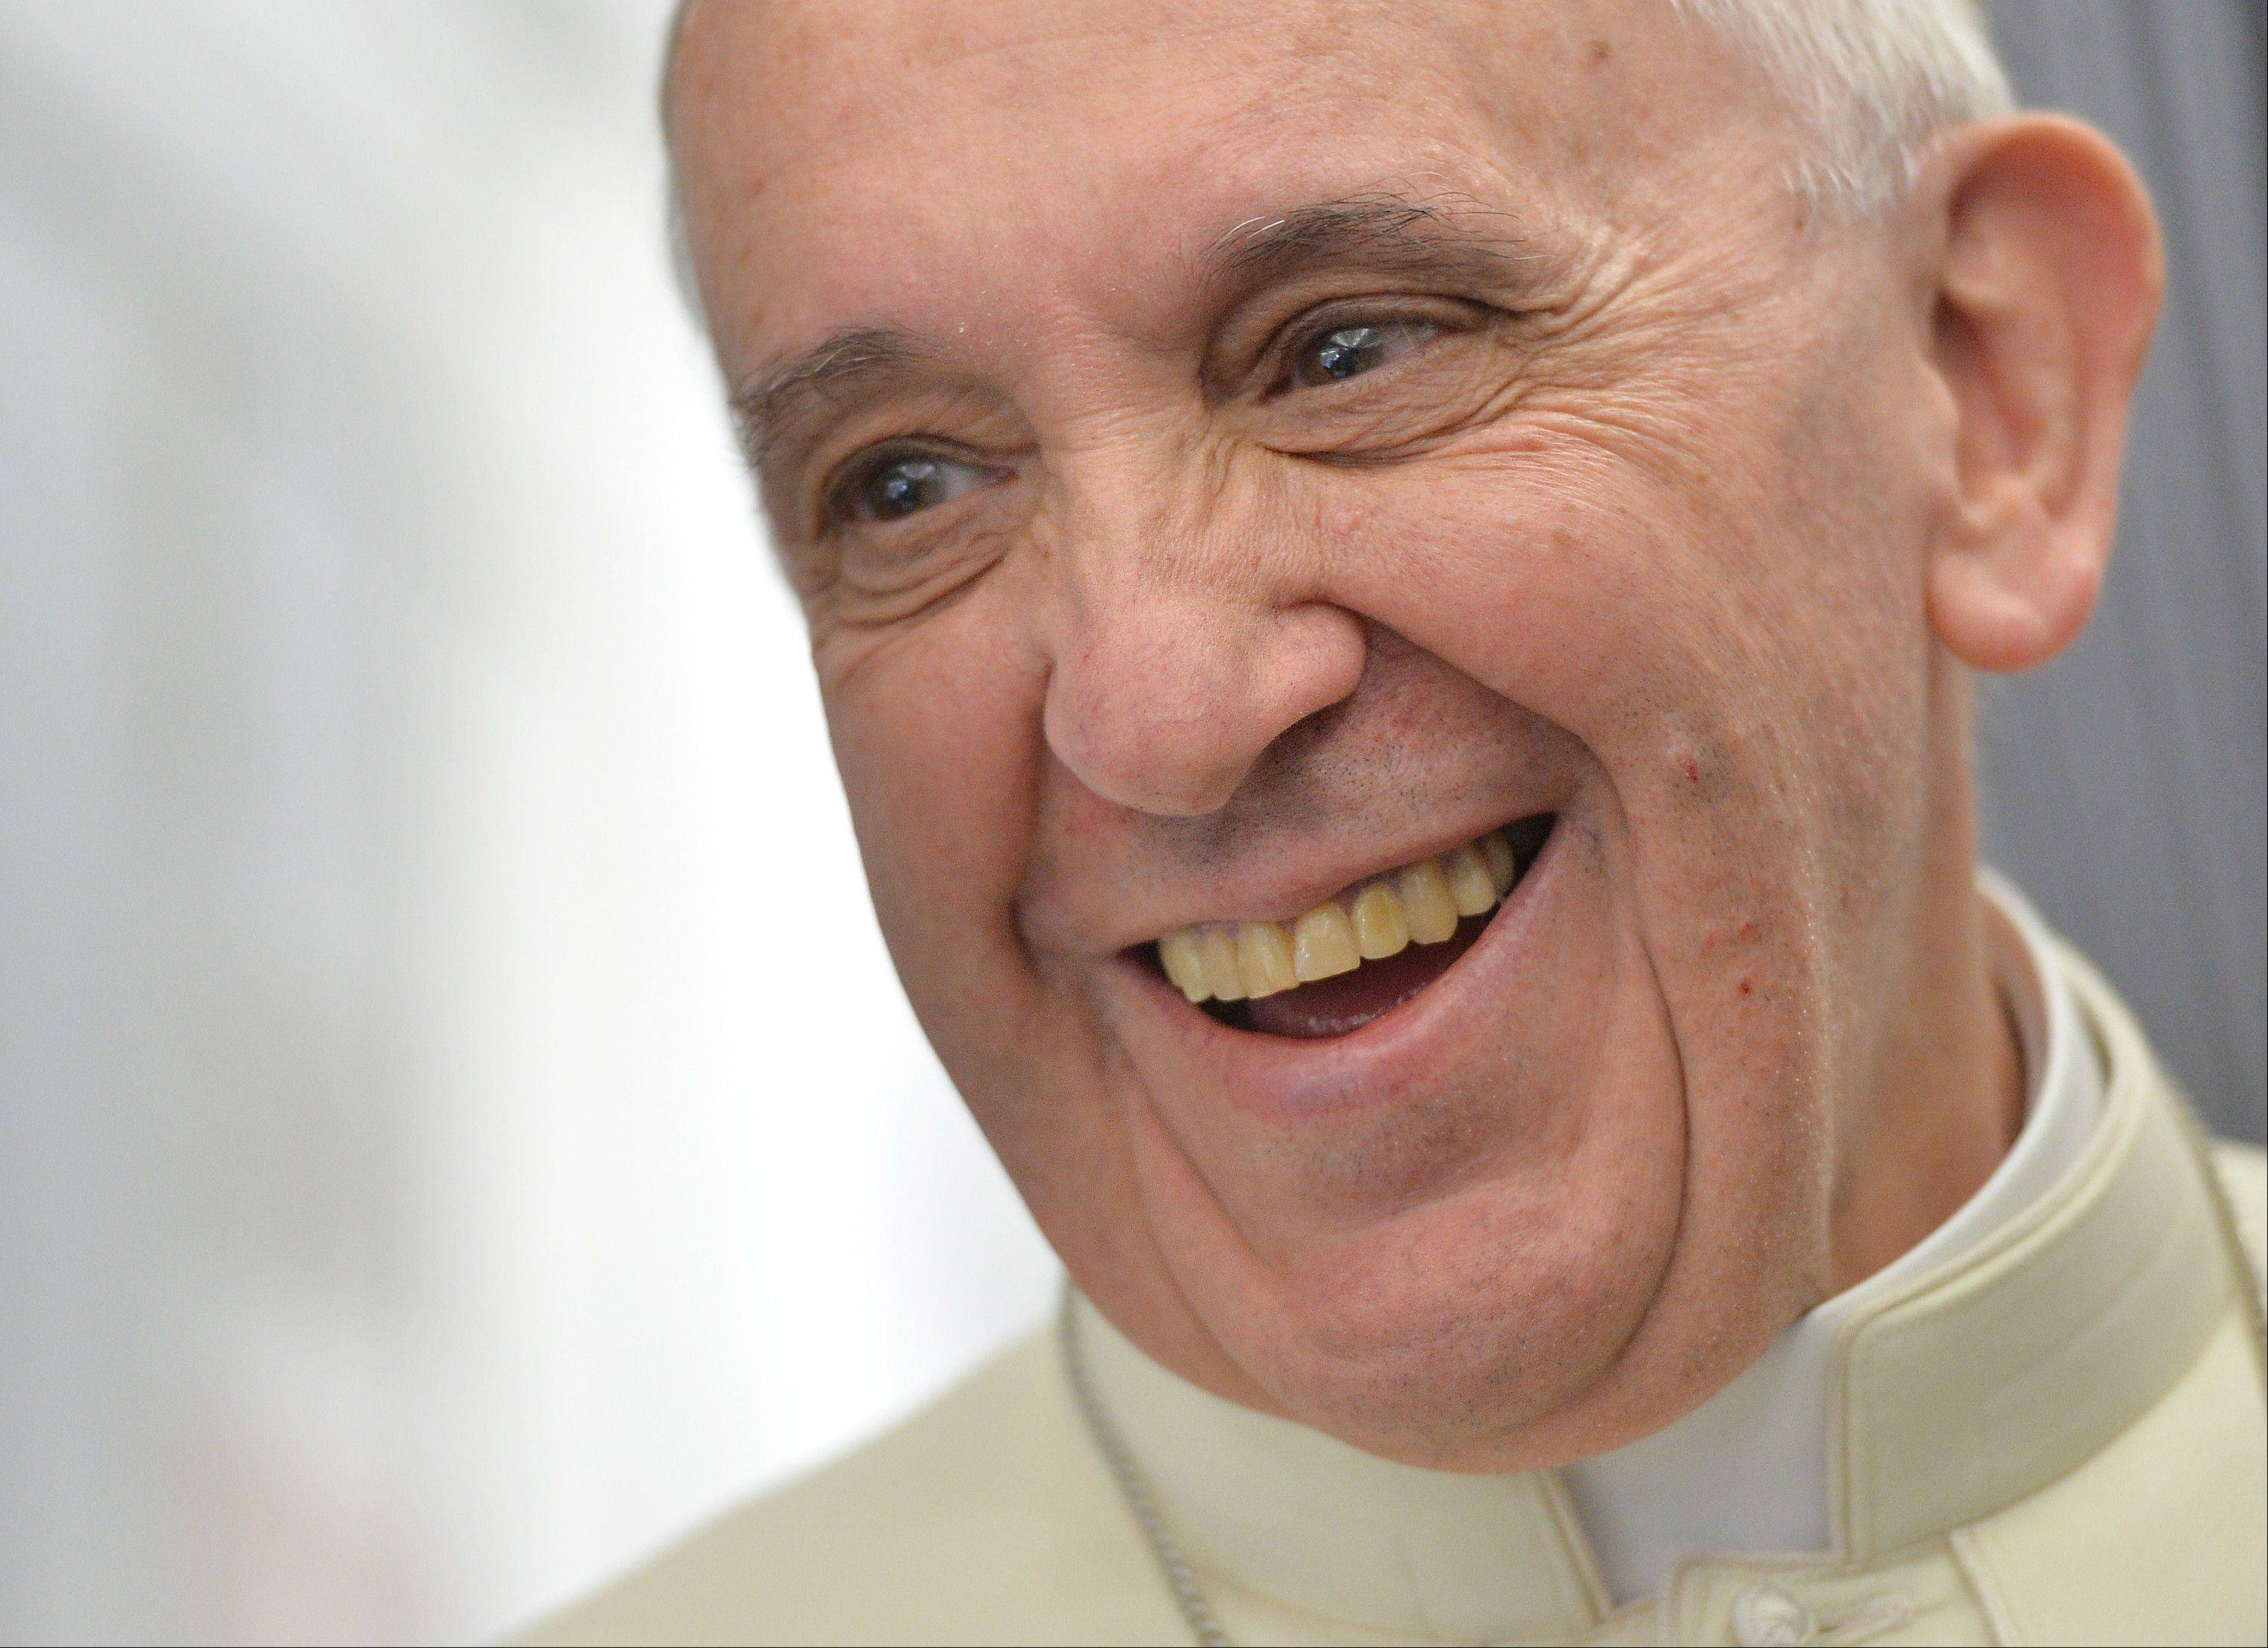 Pope Francis, the 76-year-old Argentine who became the church�s first pontiff from the Americas in March, returns to the embrace of Latin America to preside over the Roman Catholic Church�s World Youth Day festival. During his flight from Rome, Francis warned about youth unemployment in some countries in the double digits, telling about 70 journalists aboard the papal plane that there is a �risk of having a generation that hasn�t worked.� He said, �Young people at this moment are in crisis.�